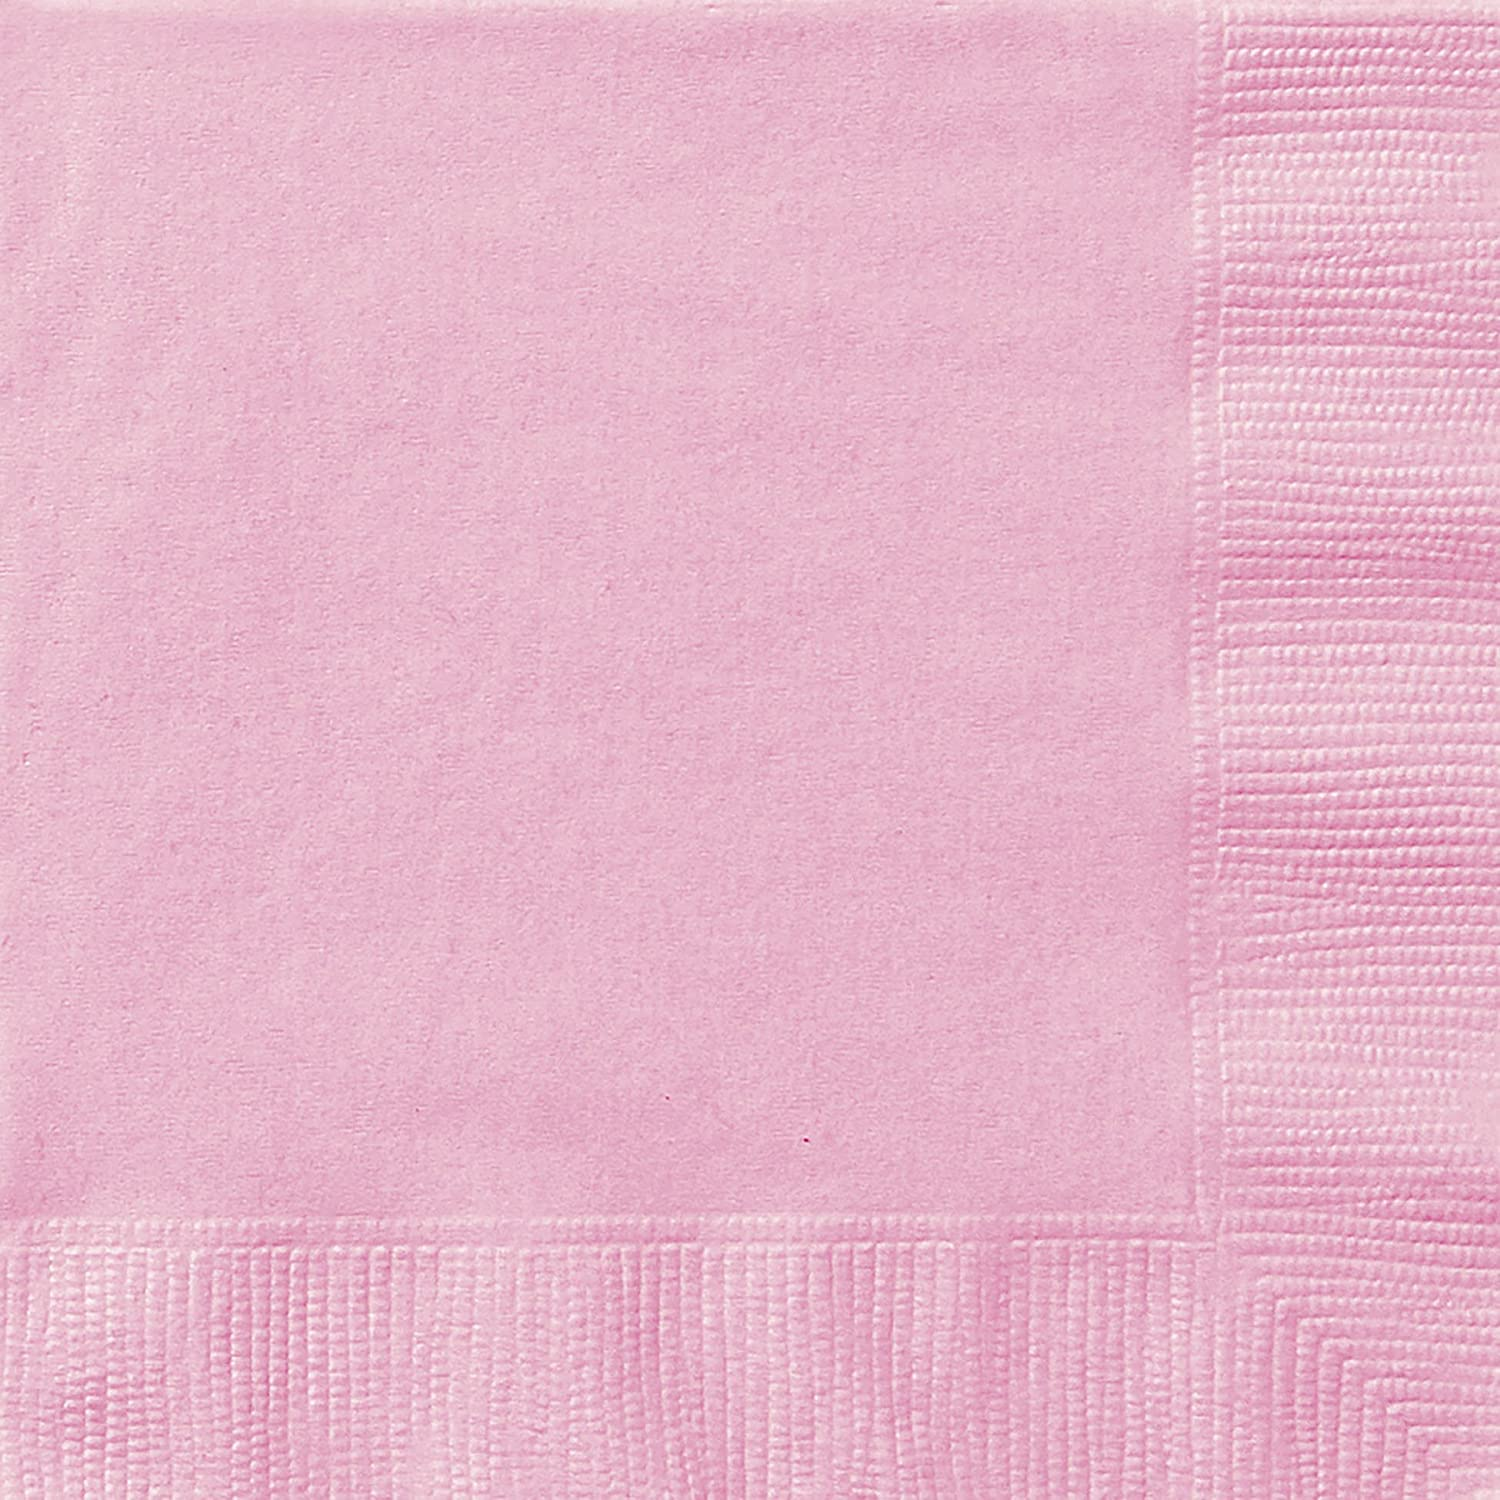 Unique Party 30875 - 6.5 Baby Pink Paper Napkins, Pack of 50